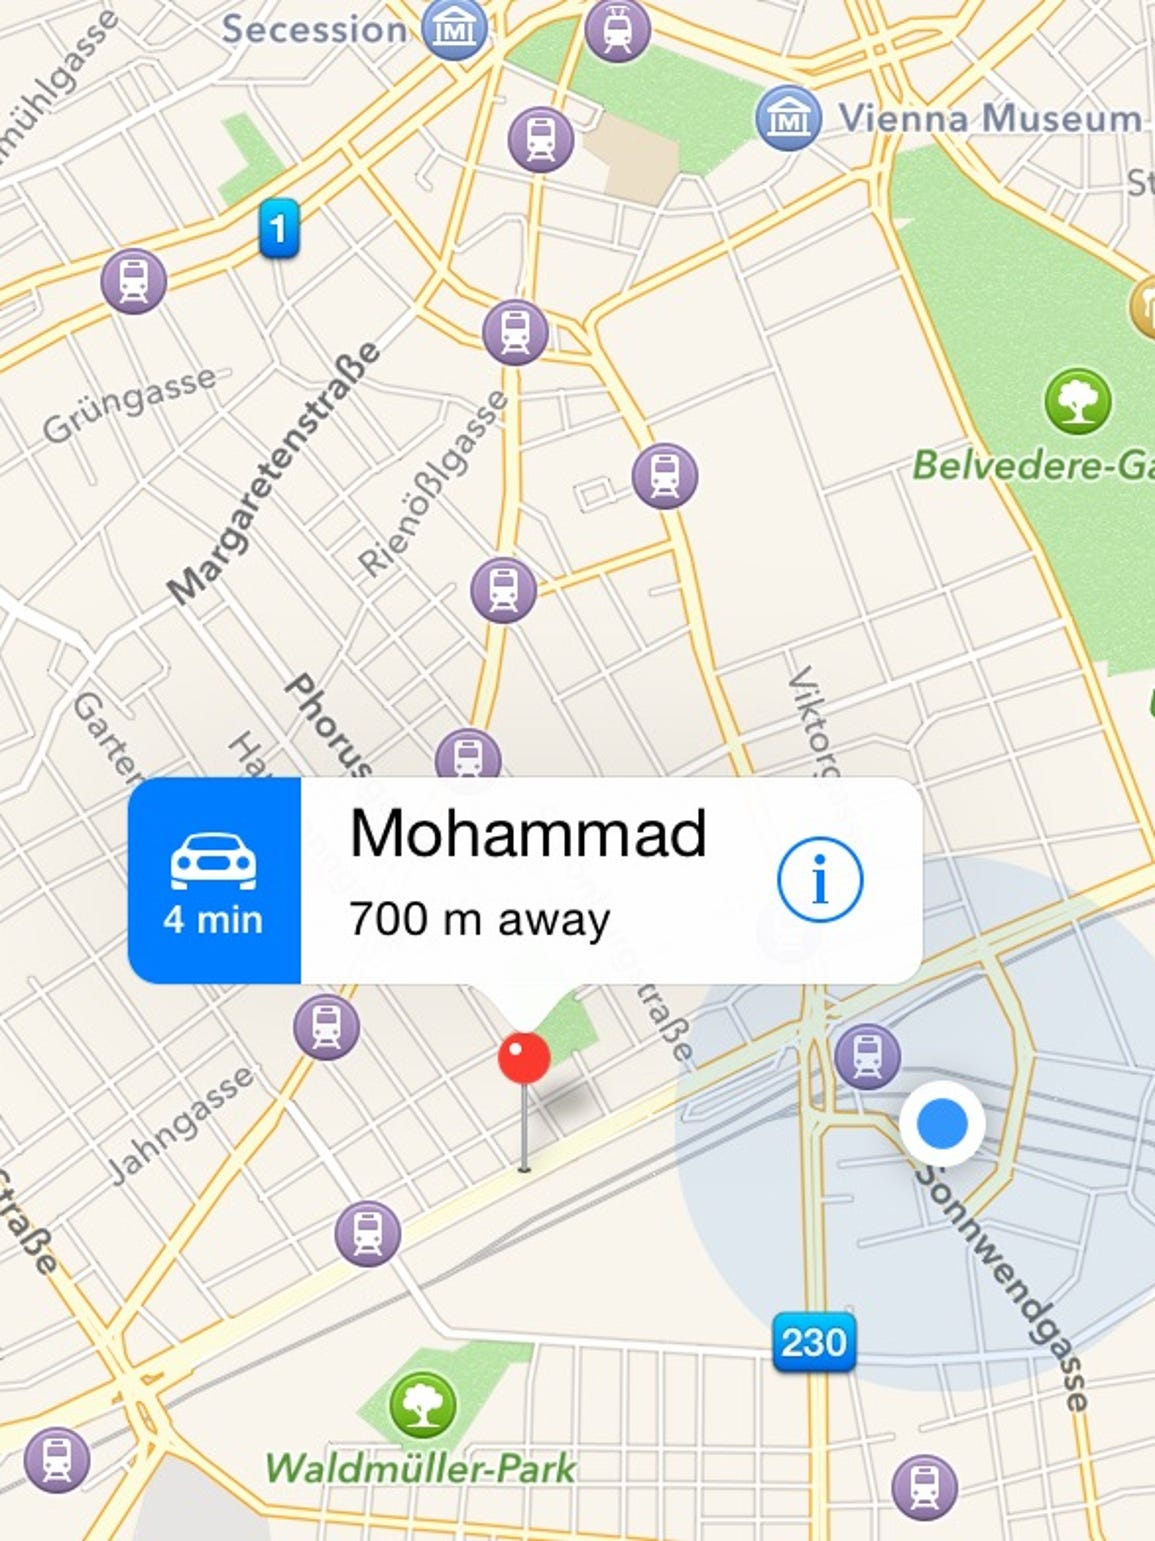 This image shows my distance from Mohammad Helani,